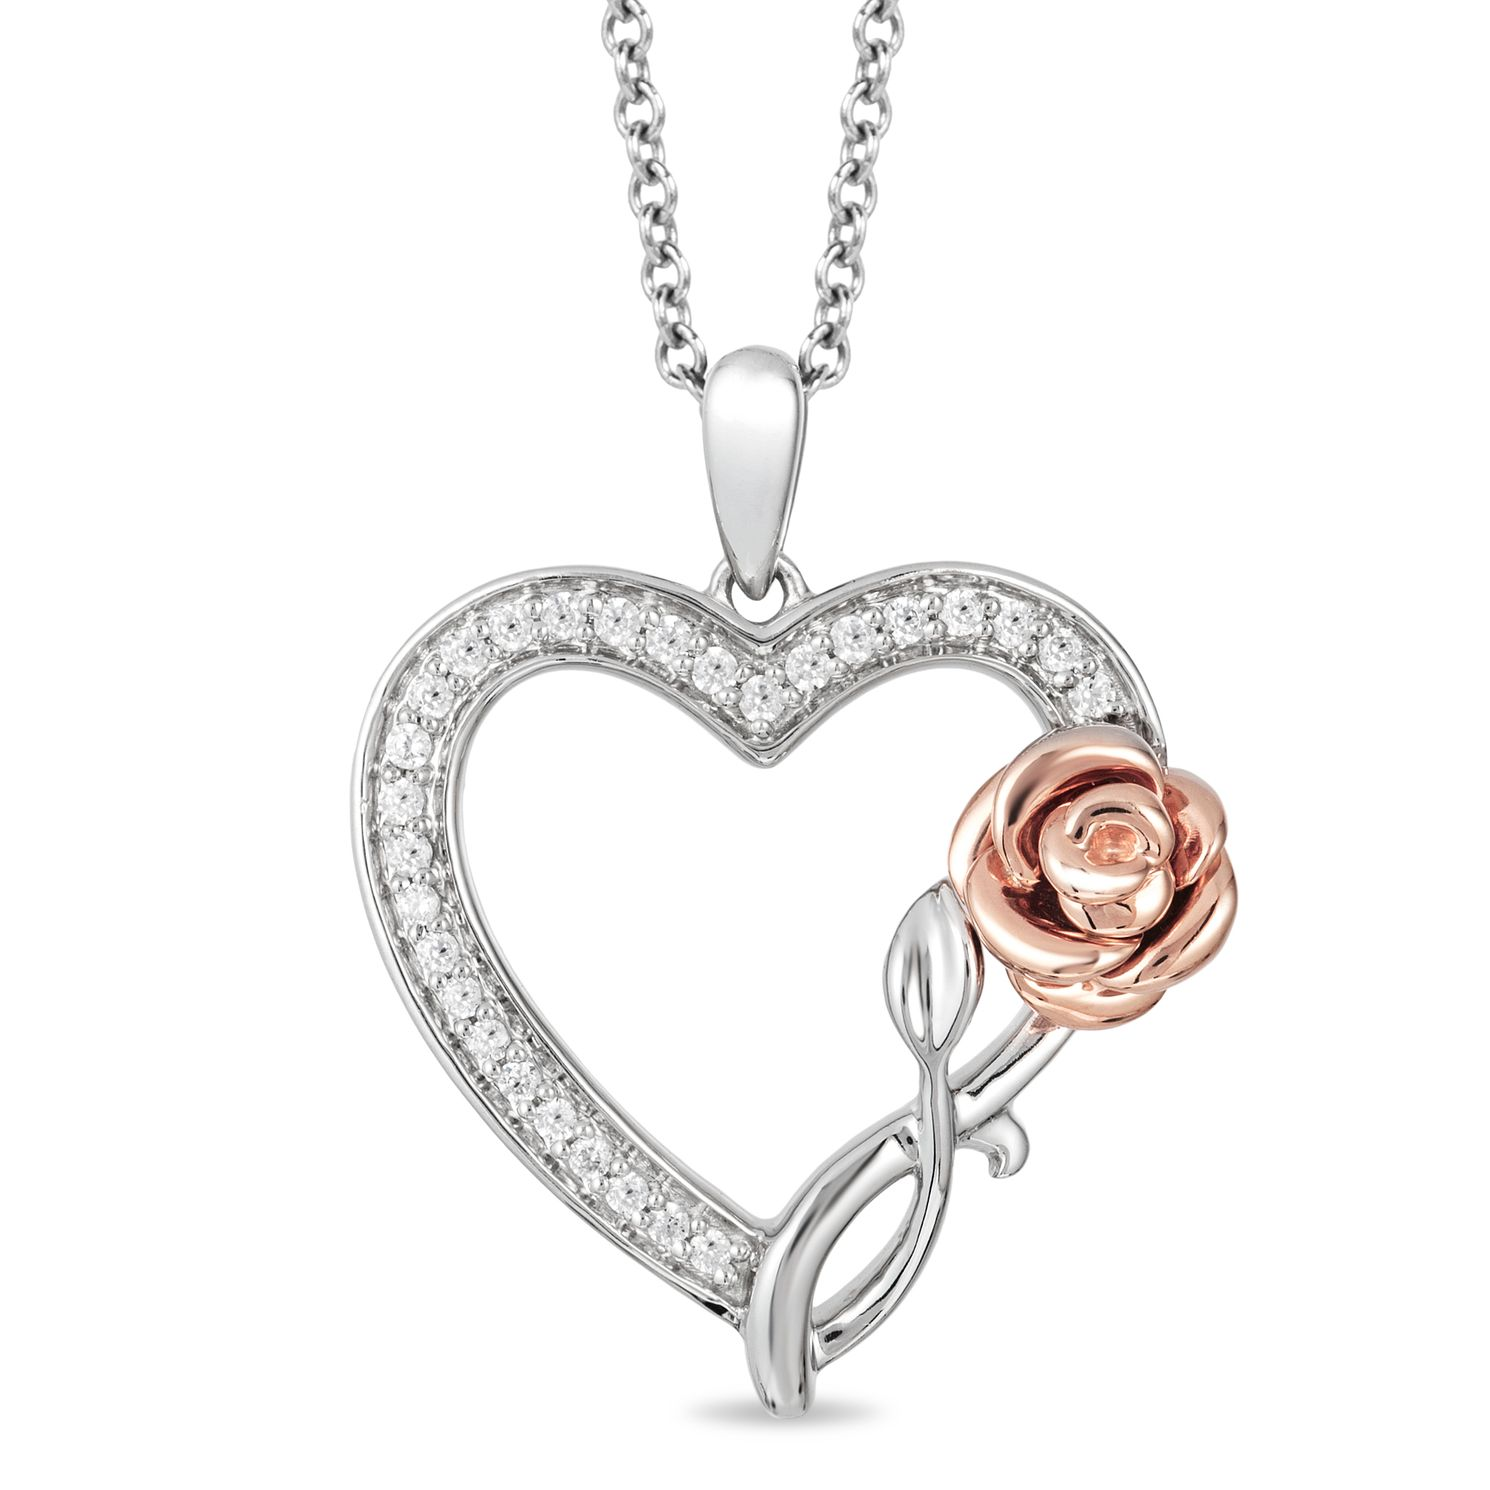 Enchanted Disney Fine Jewelry Belle Heart & Rose Pendant - Product number 5084741